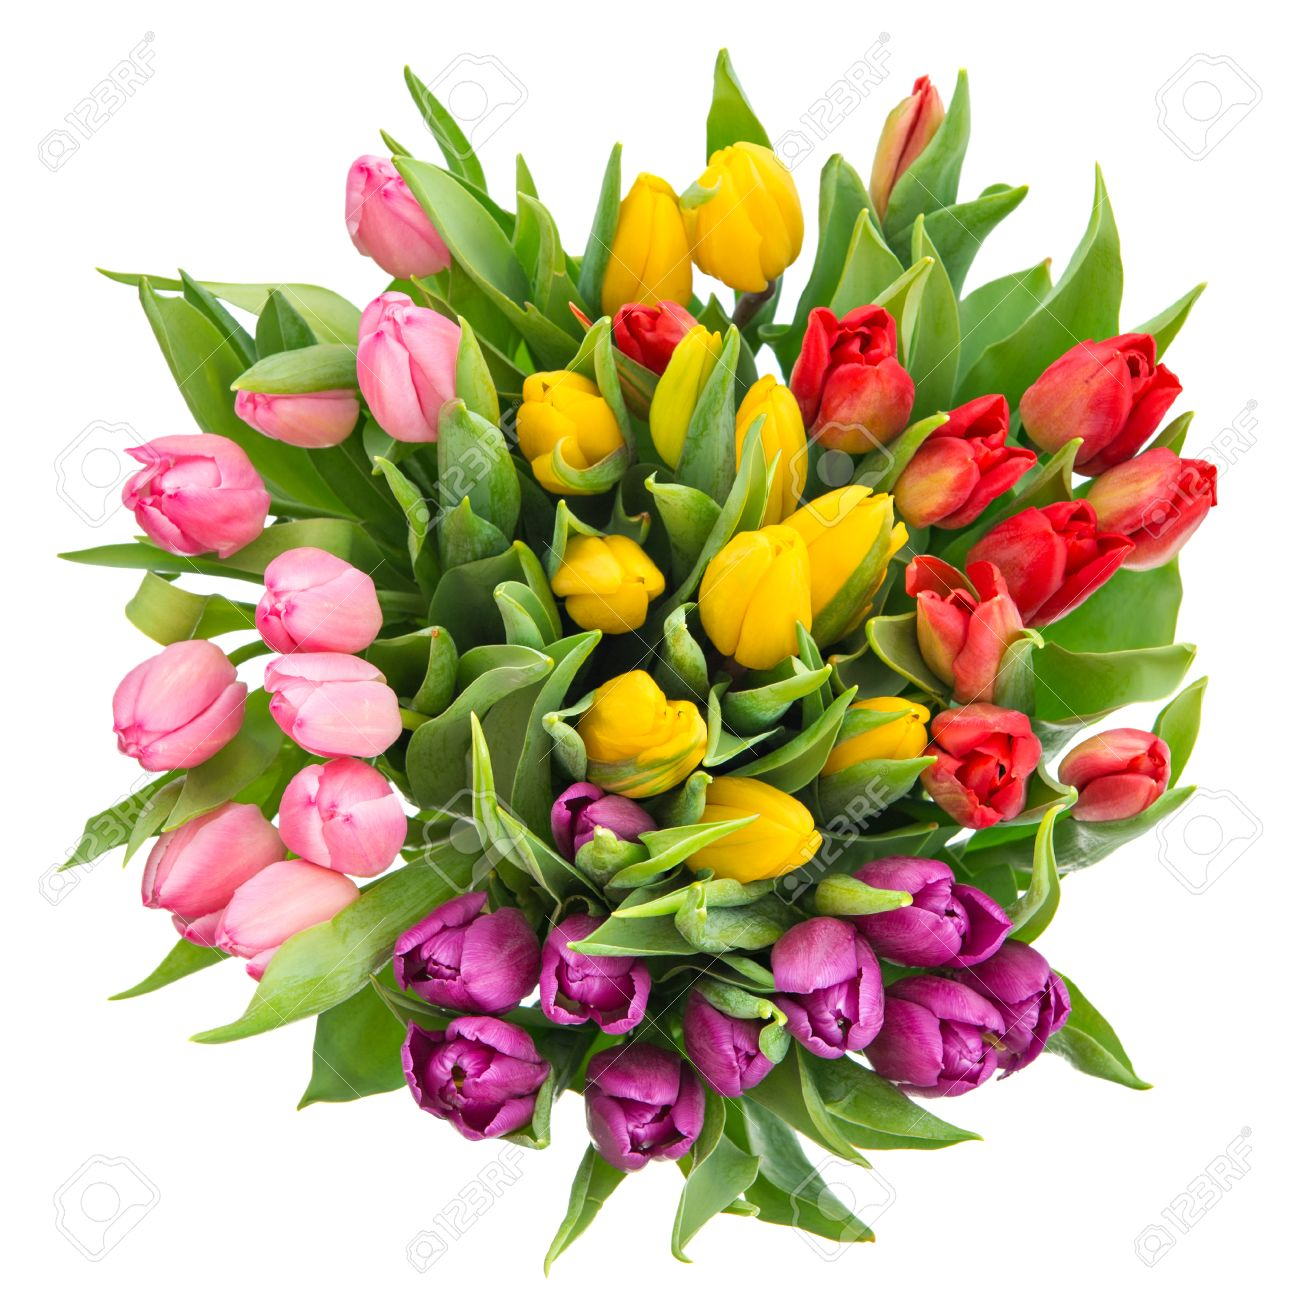 Bouquet Of Fresh Multicolor Tulips Isolated On White Spring Flowers